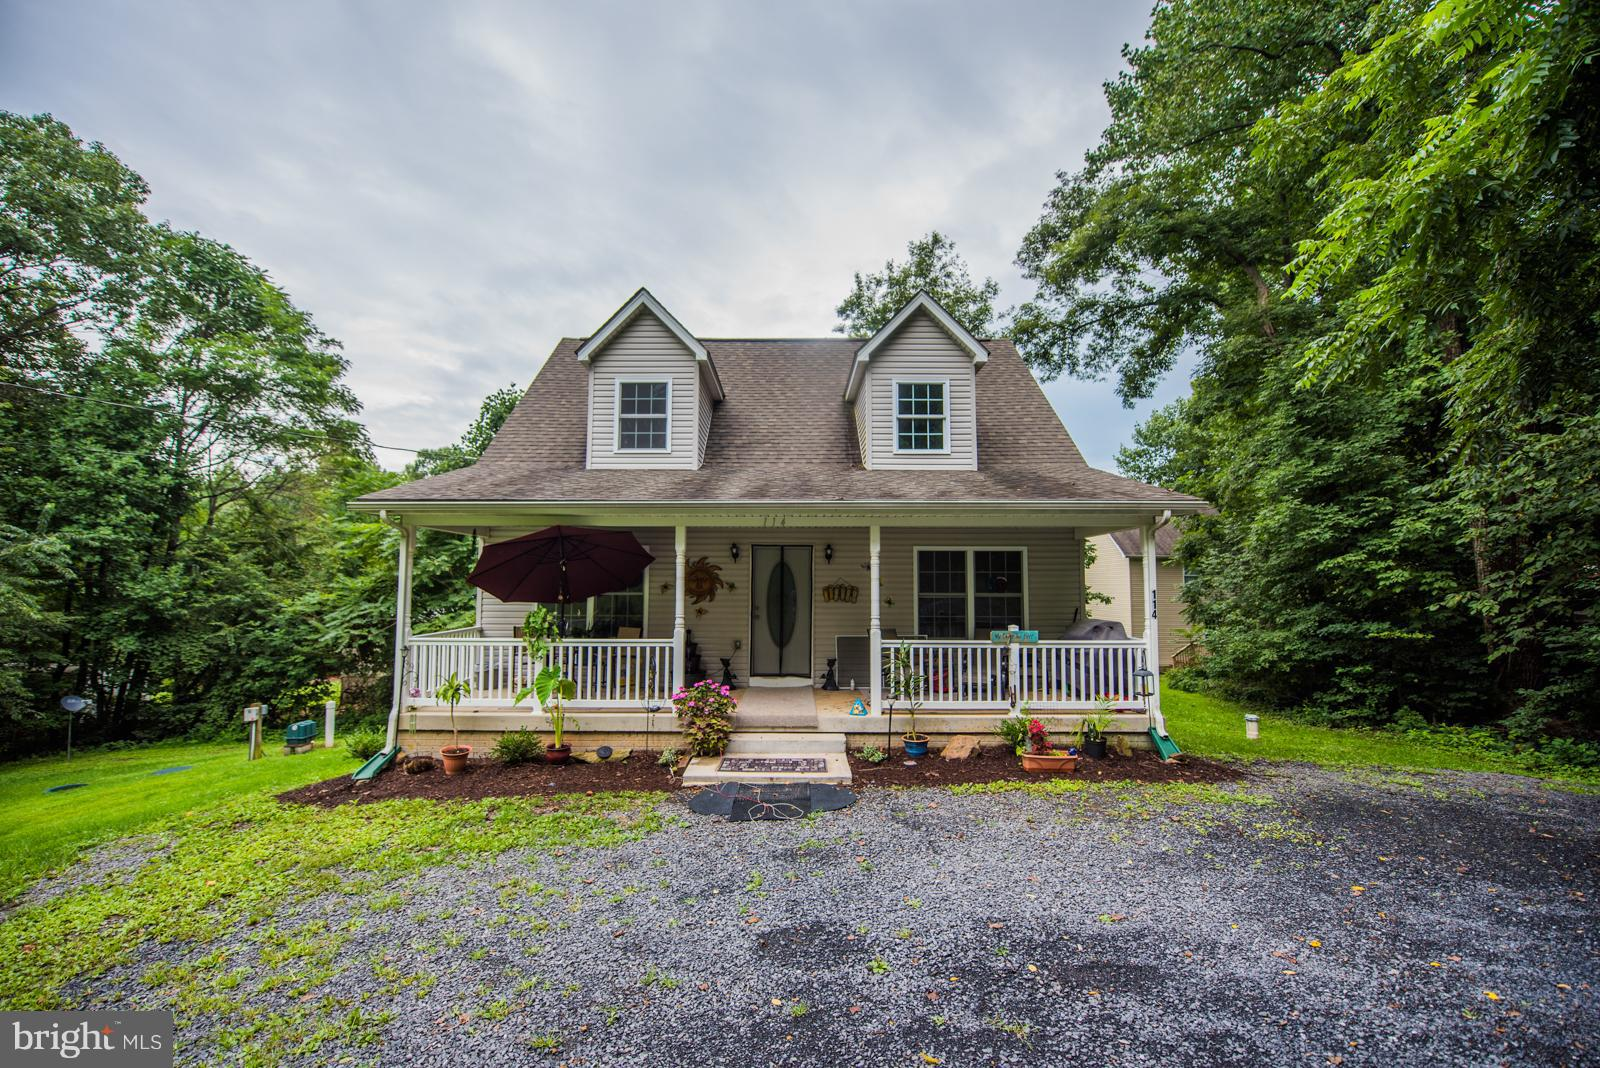 114 FOREST DRIVE, CHESTER GAP, VA 22623